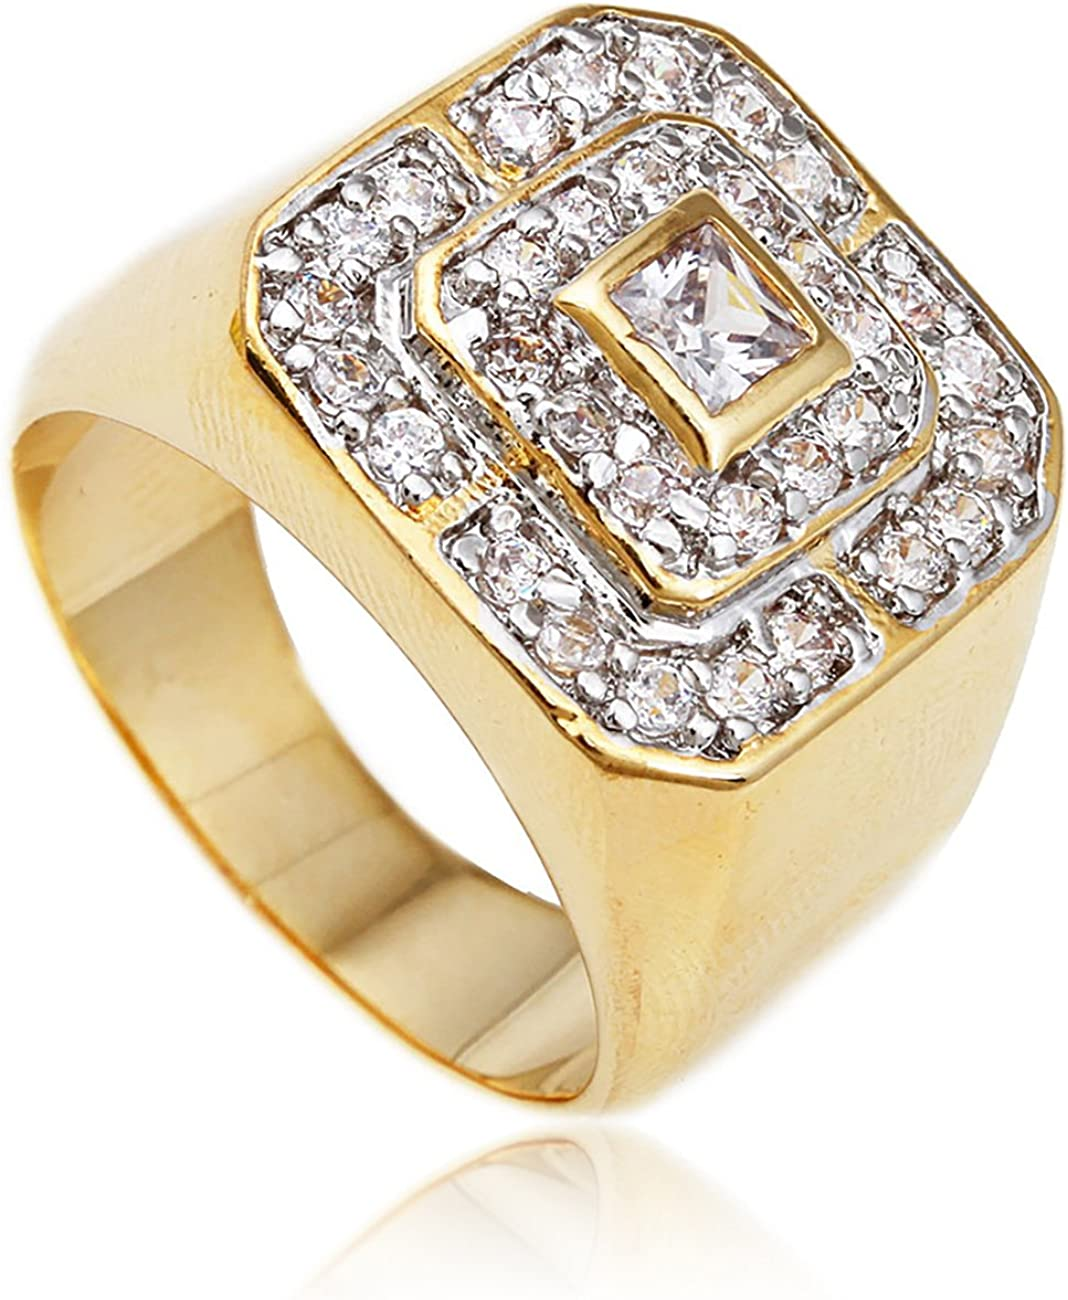 JOTW Men's Goldtone Cz Layered Squares Ring Sizes 7-17 (BF-OFHB-OBTE)